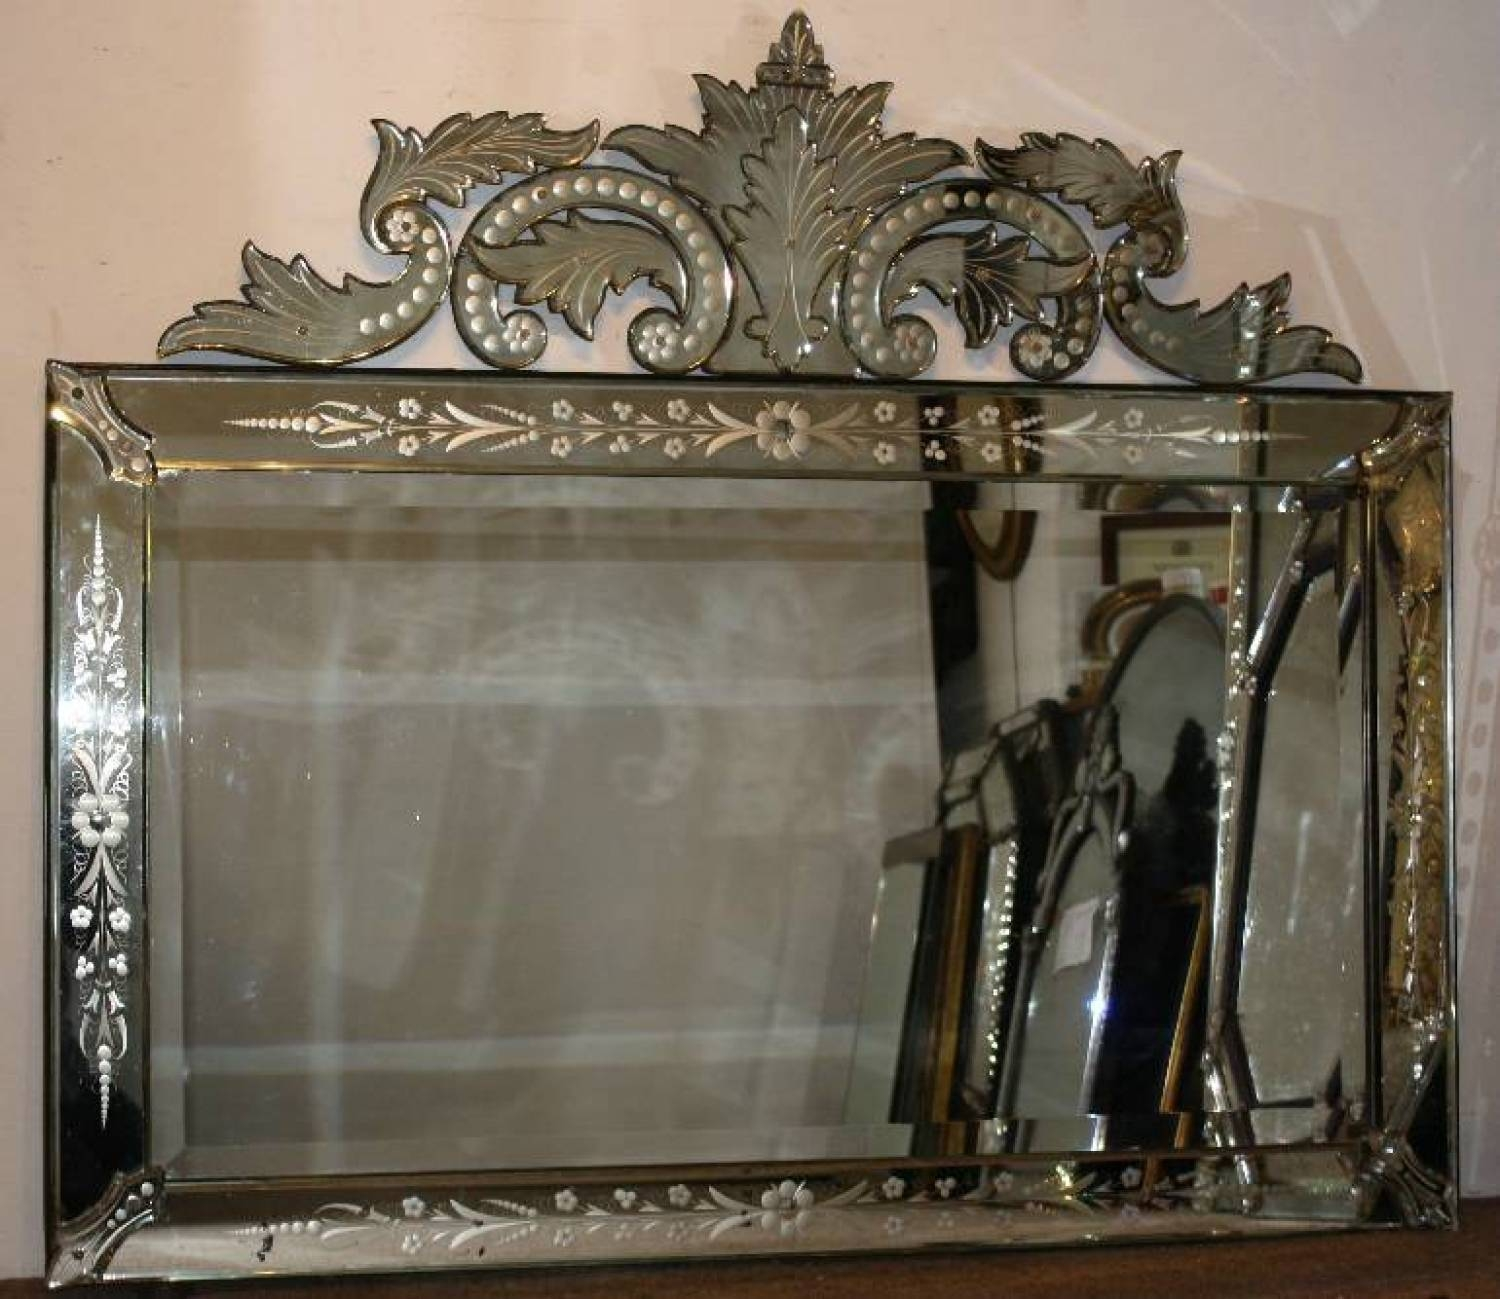 Venetian Mirror Style — All About Home Design : Reuse Of An Intended For Venetian Style Mirrors (View 6 of 15)